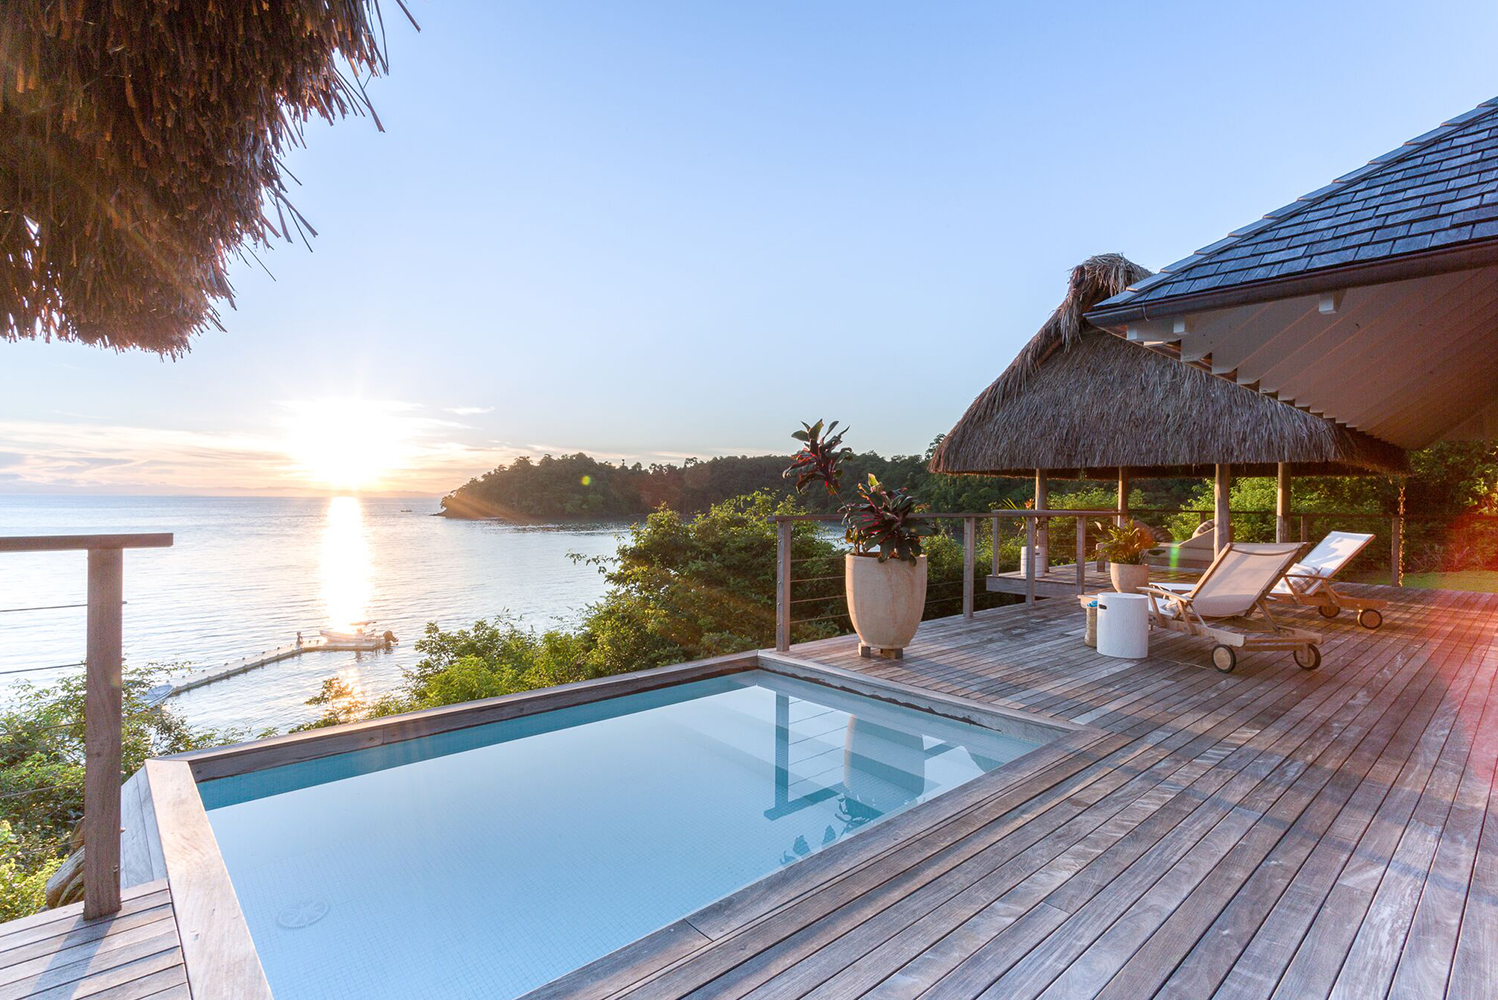 Islas Secas Reserve & Lodge is the vision of conservation philanthropist Louis Bacon.